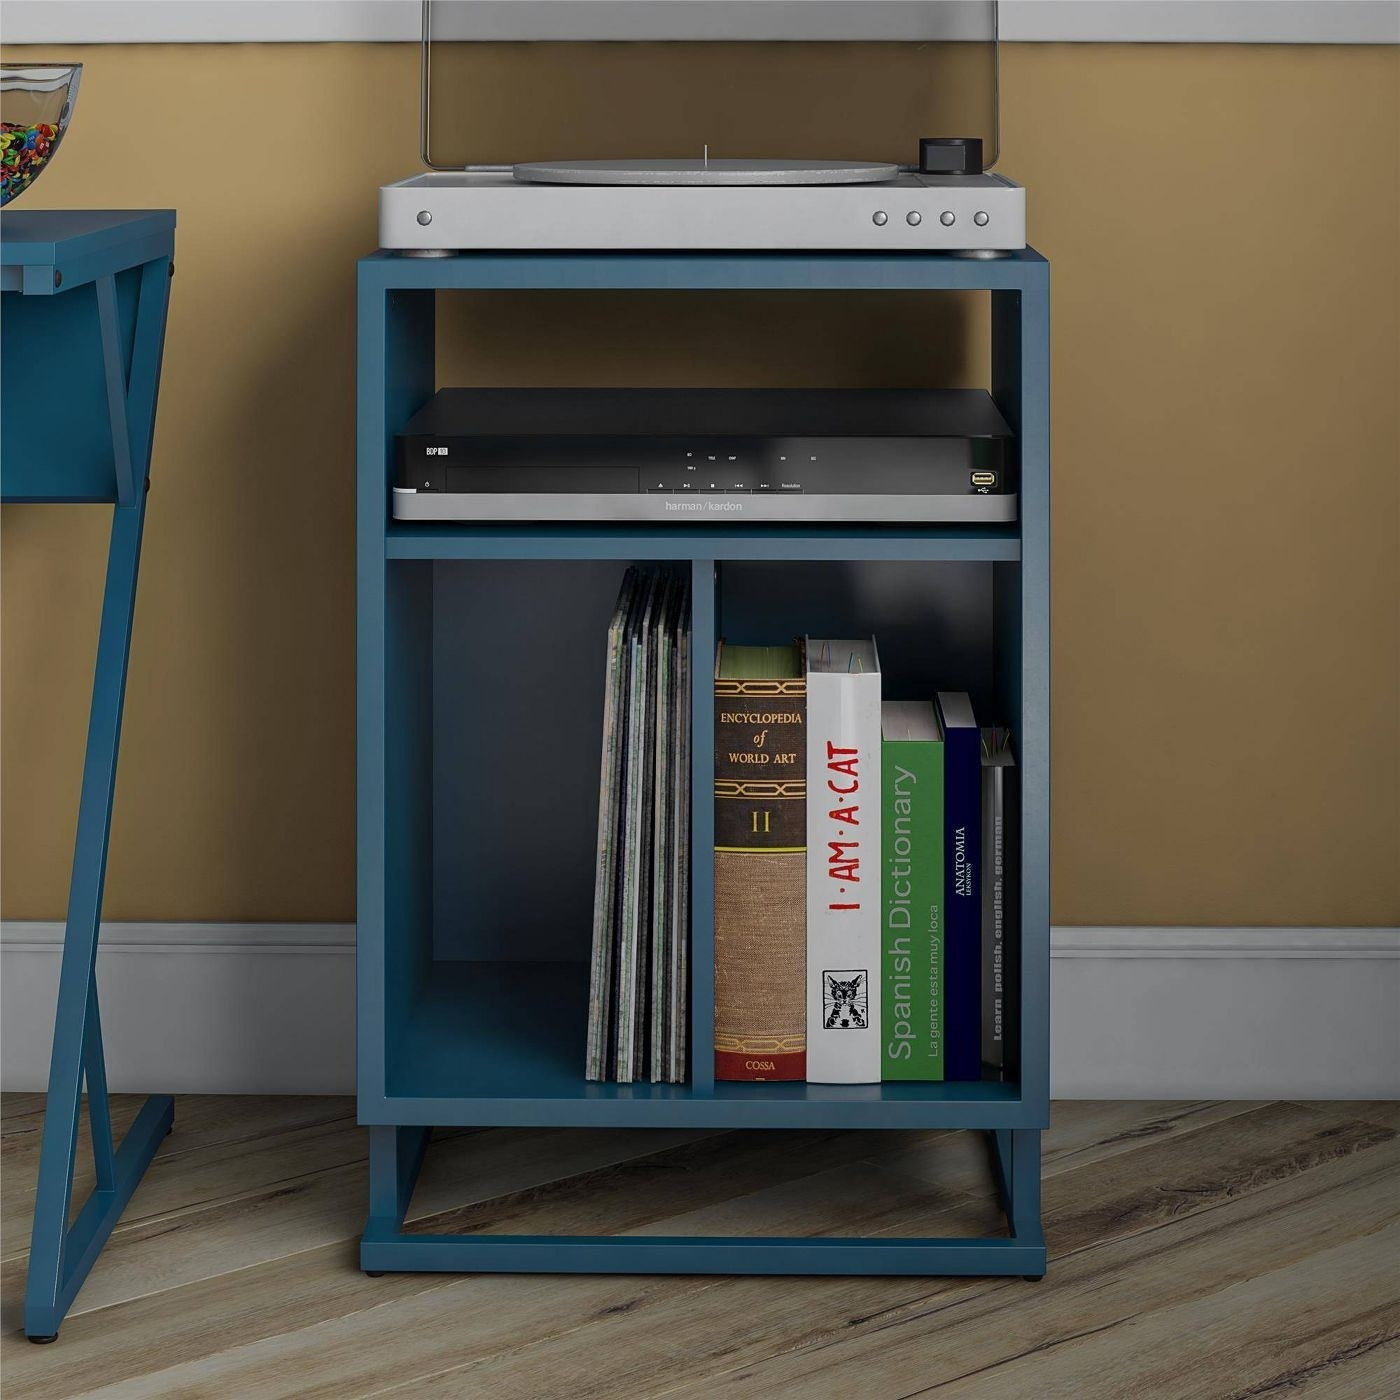 The record stand in blue, with three storage areas — a large bottom shelf, big enough to hold vinyl, divided in half; a smaller cubby above it; and a top area, where you can place your turntable